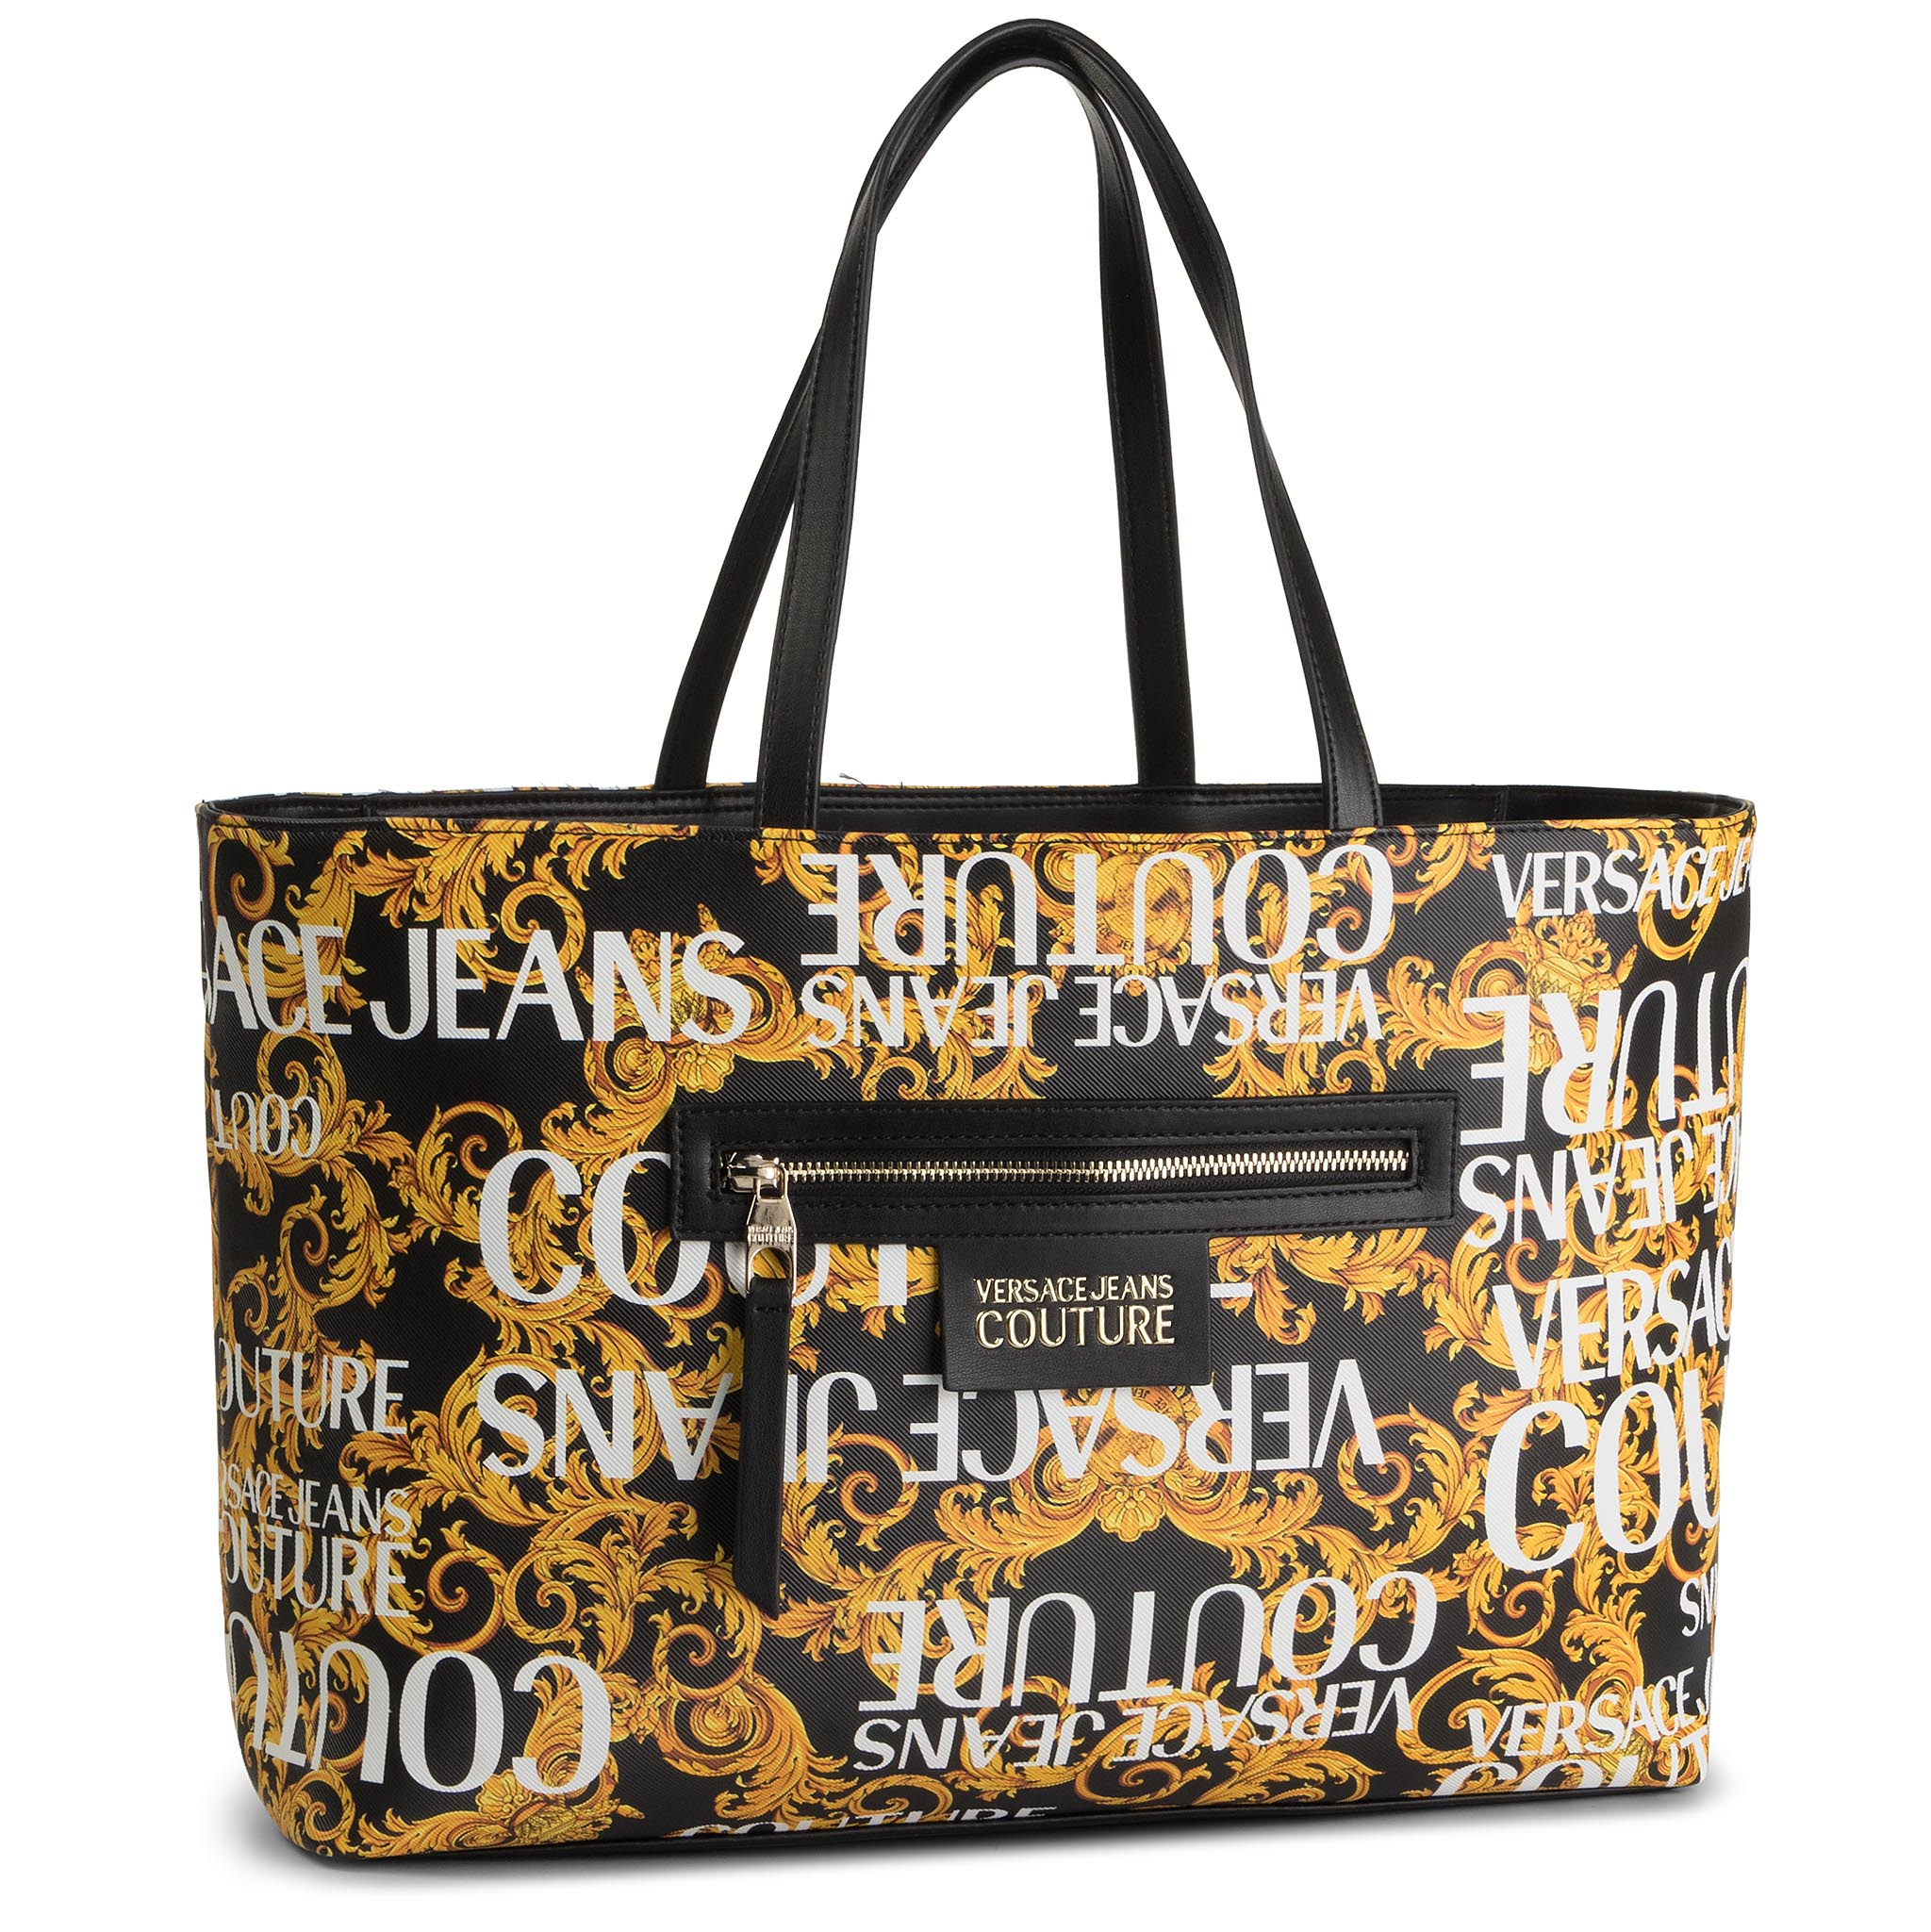 Kabelka VERSACE JEANS COUTURE - E1VUBBS1 40328 M27